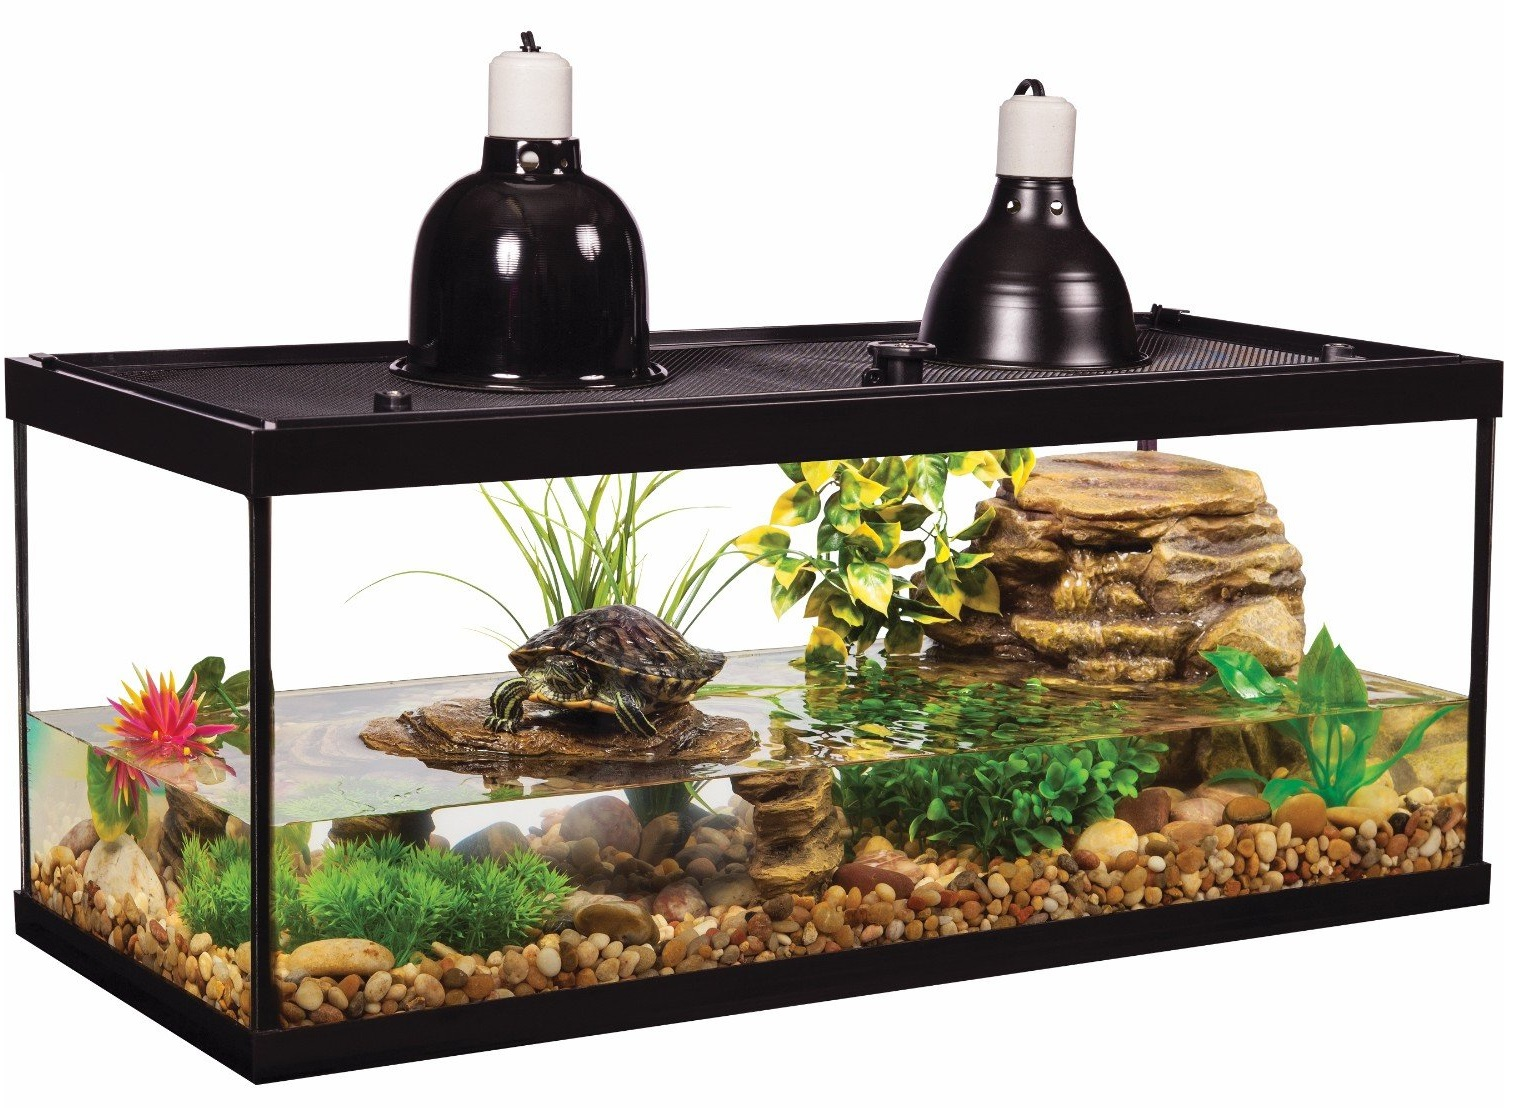 Best Review 20-Gallon Fish Tank Kits